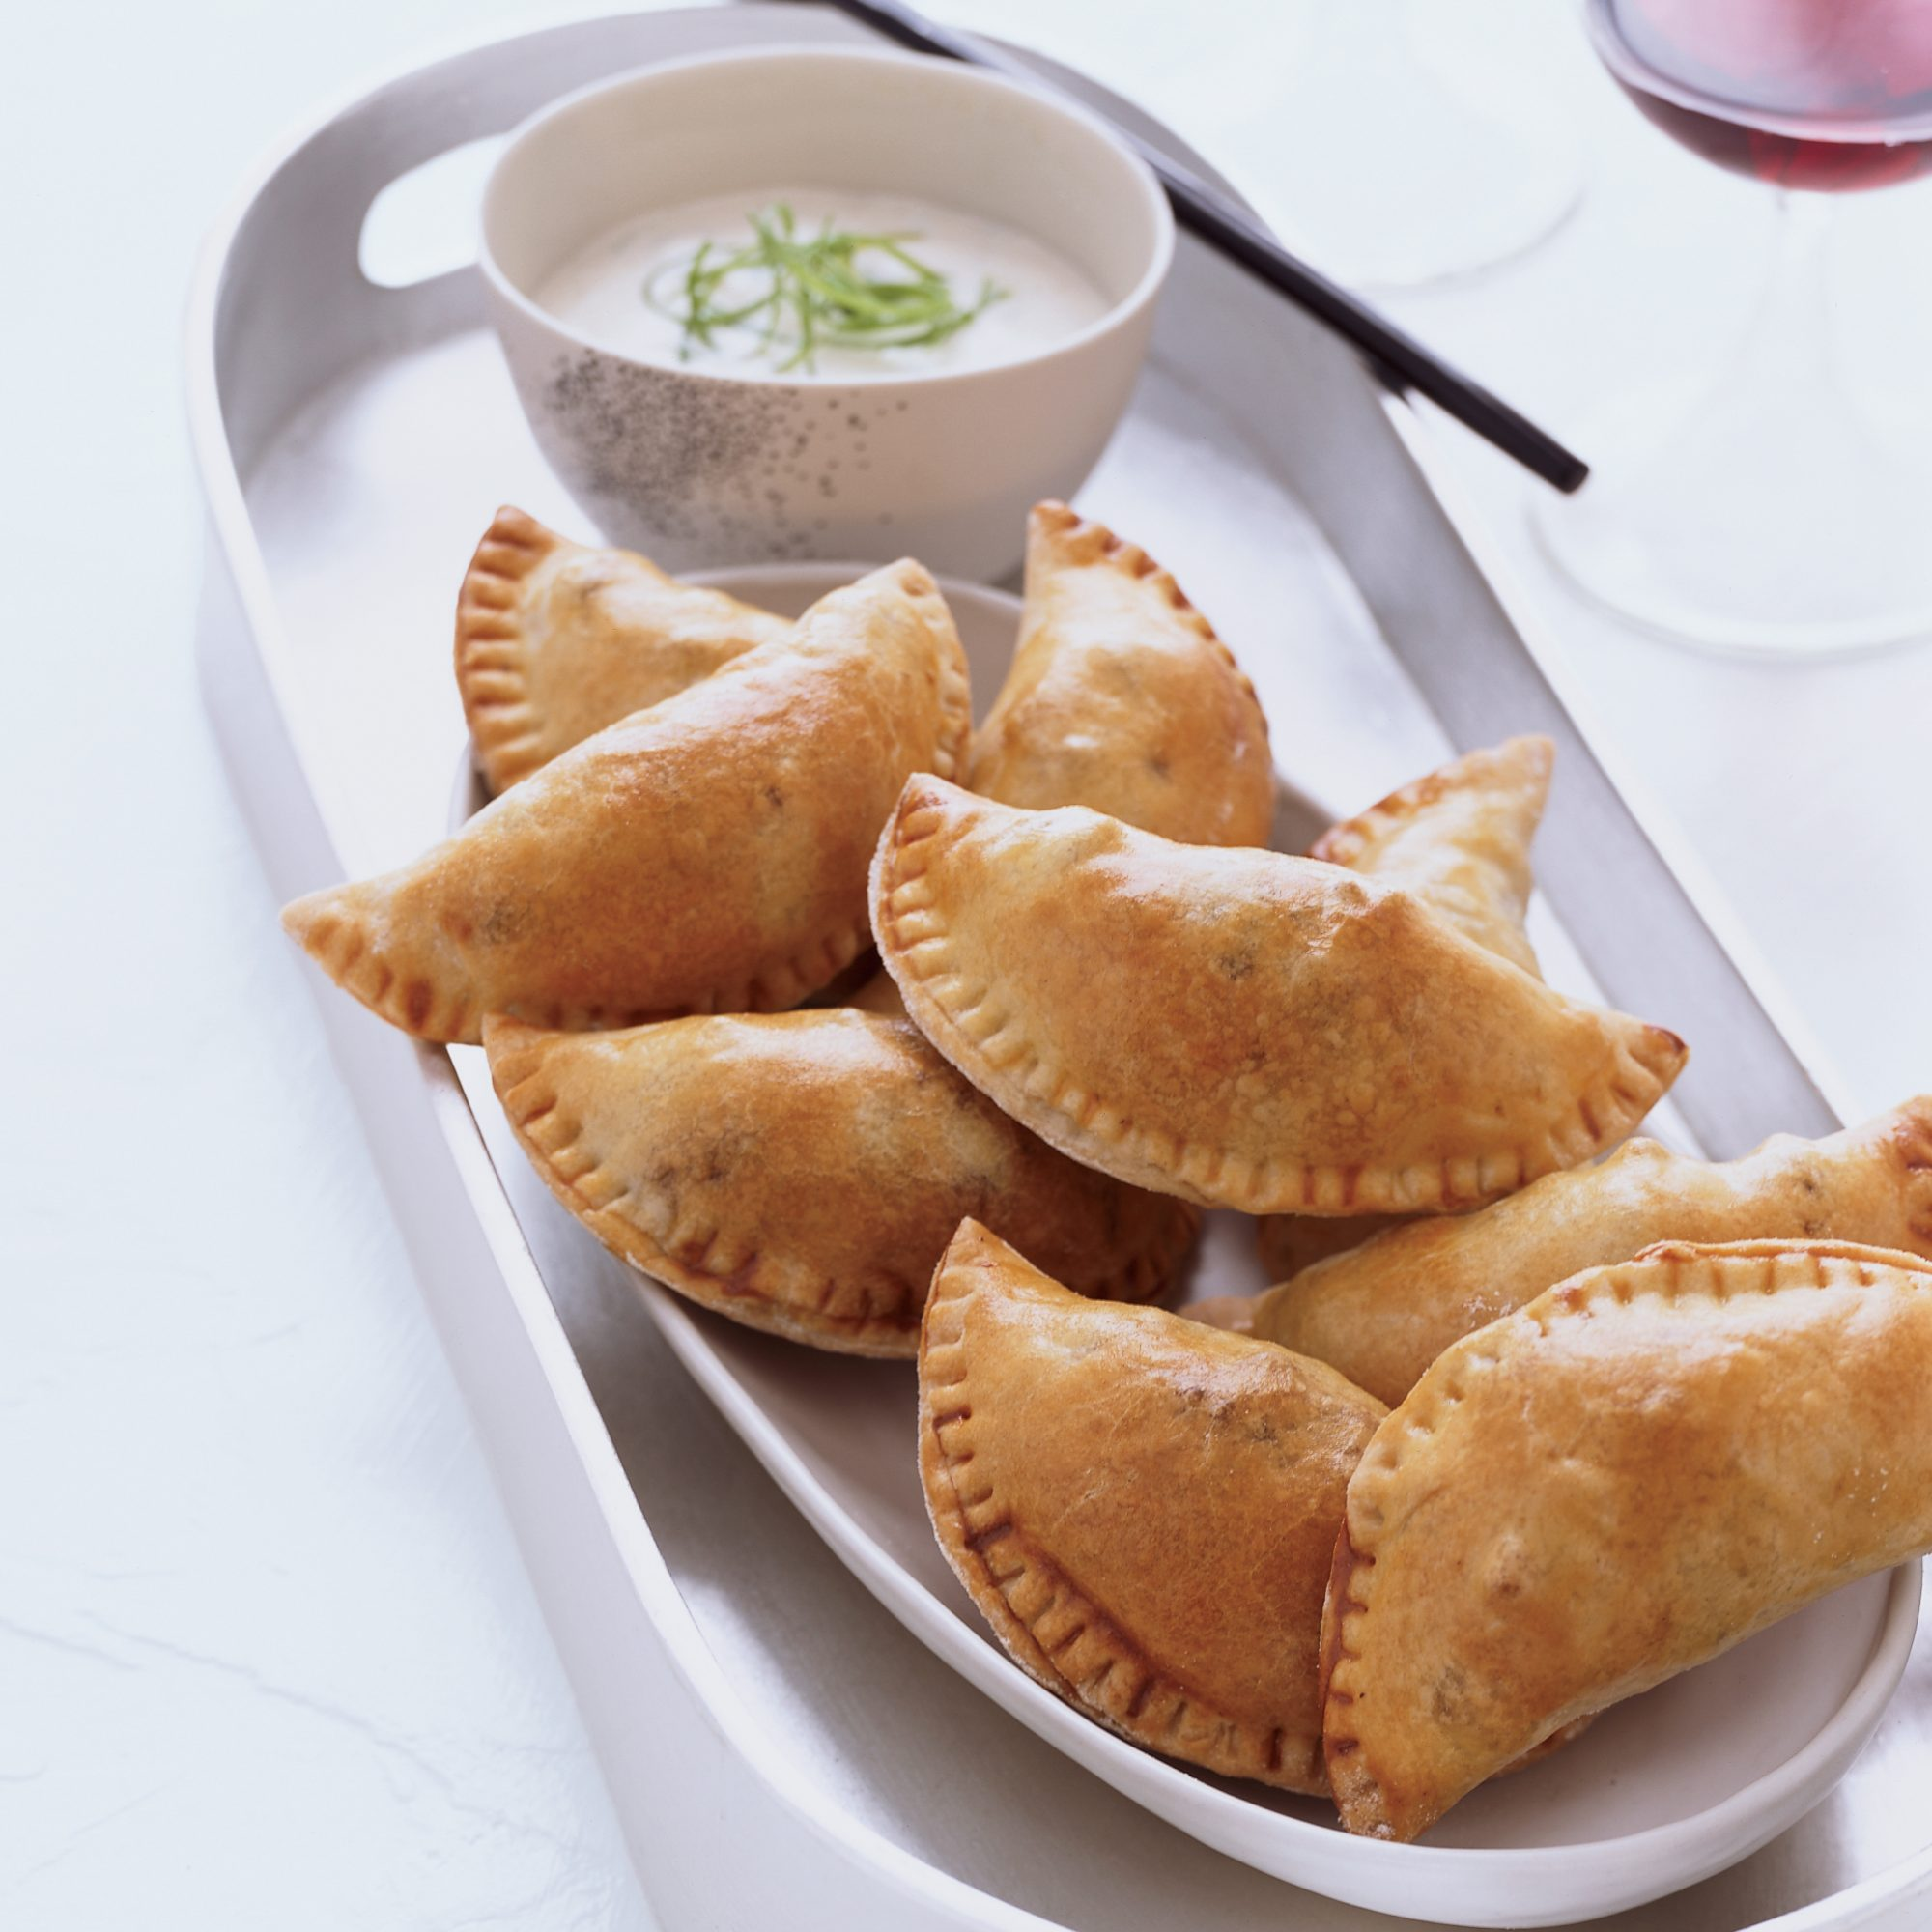 Natchitoches Meat Pies with Spicy Buttermilk Dip